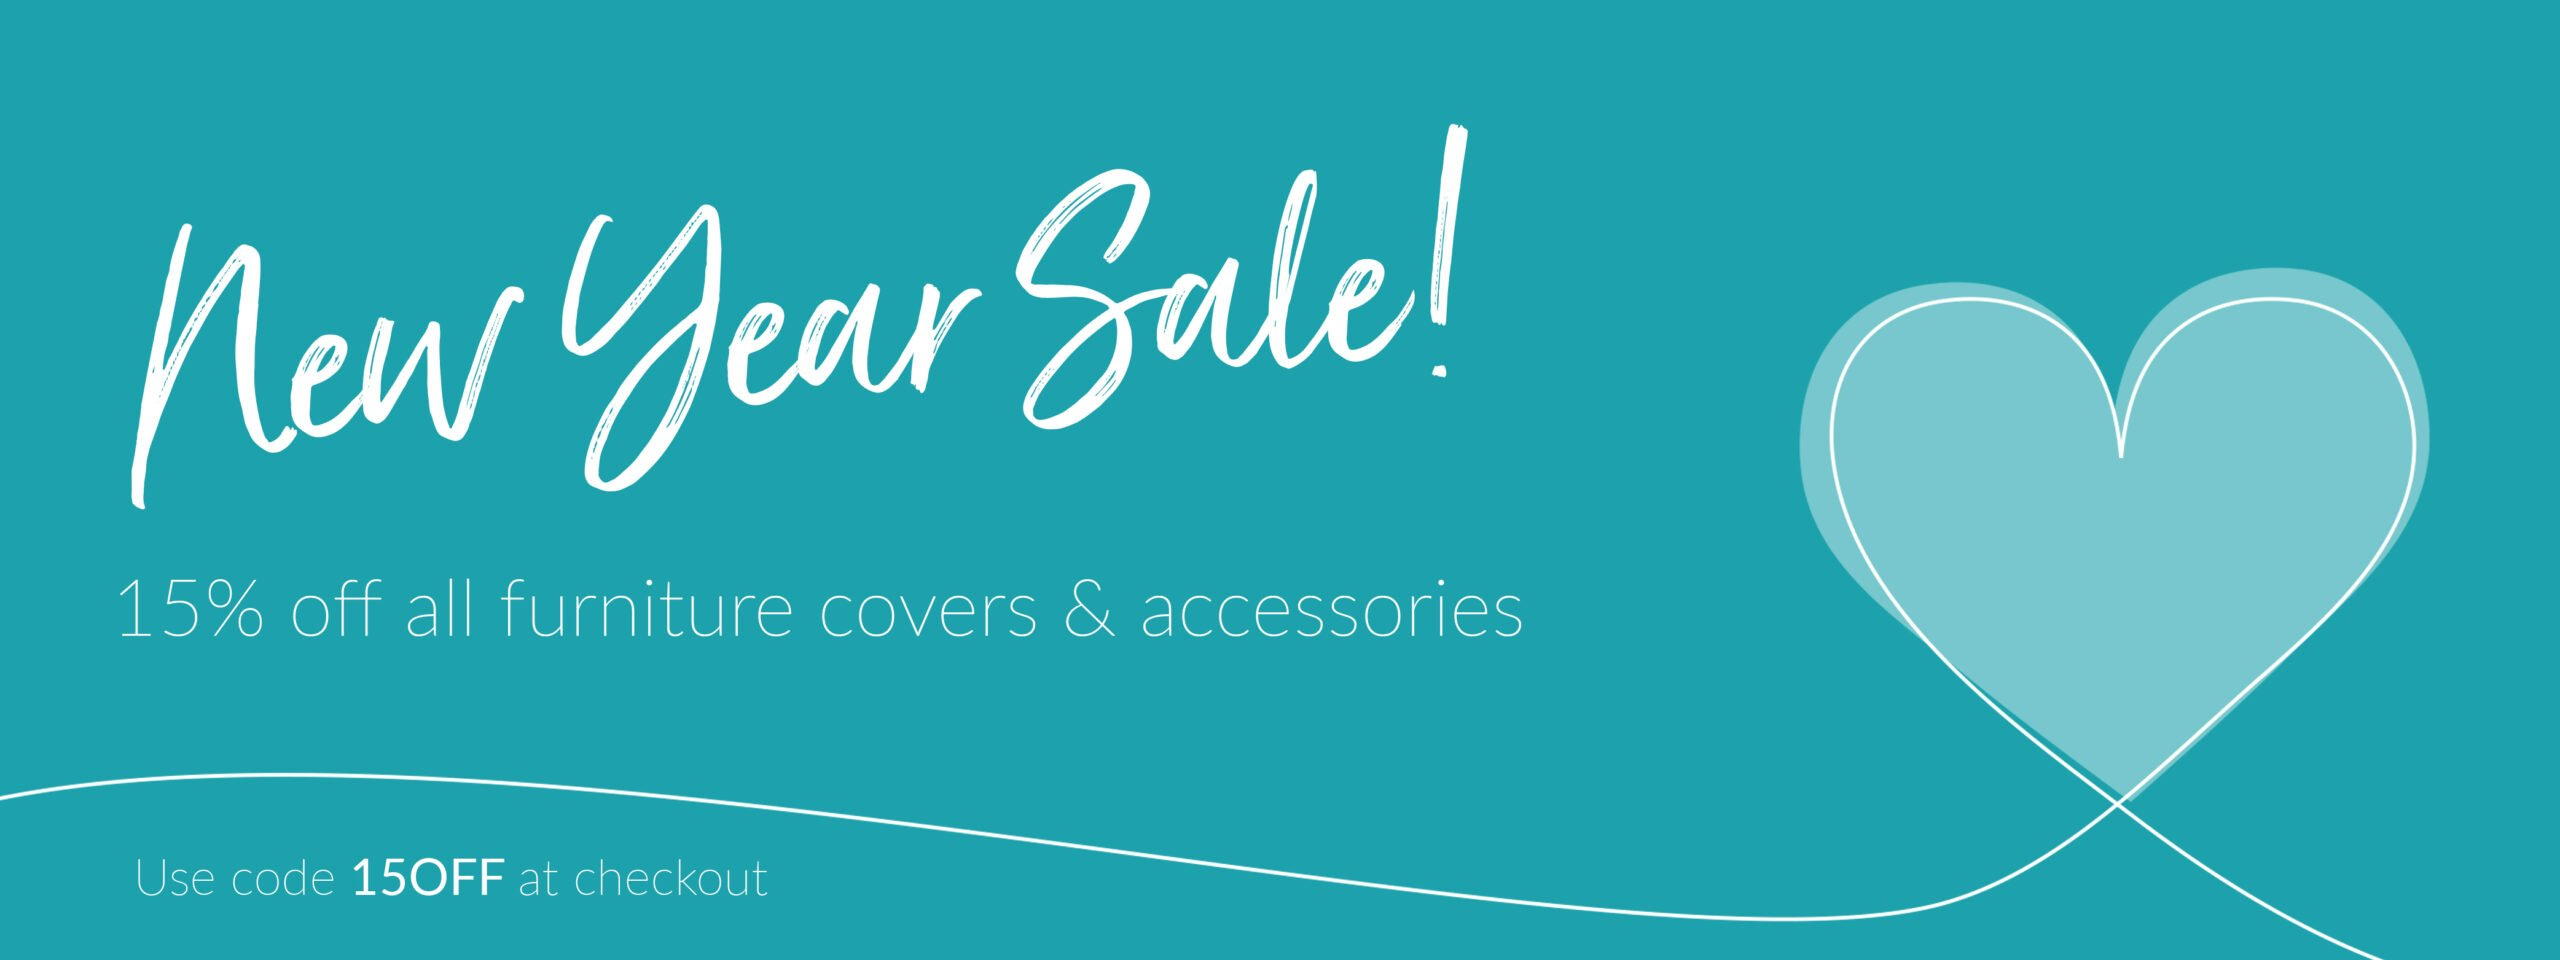 New Year Sale - 15% off all furniture covers and accessories